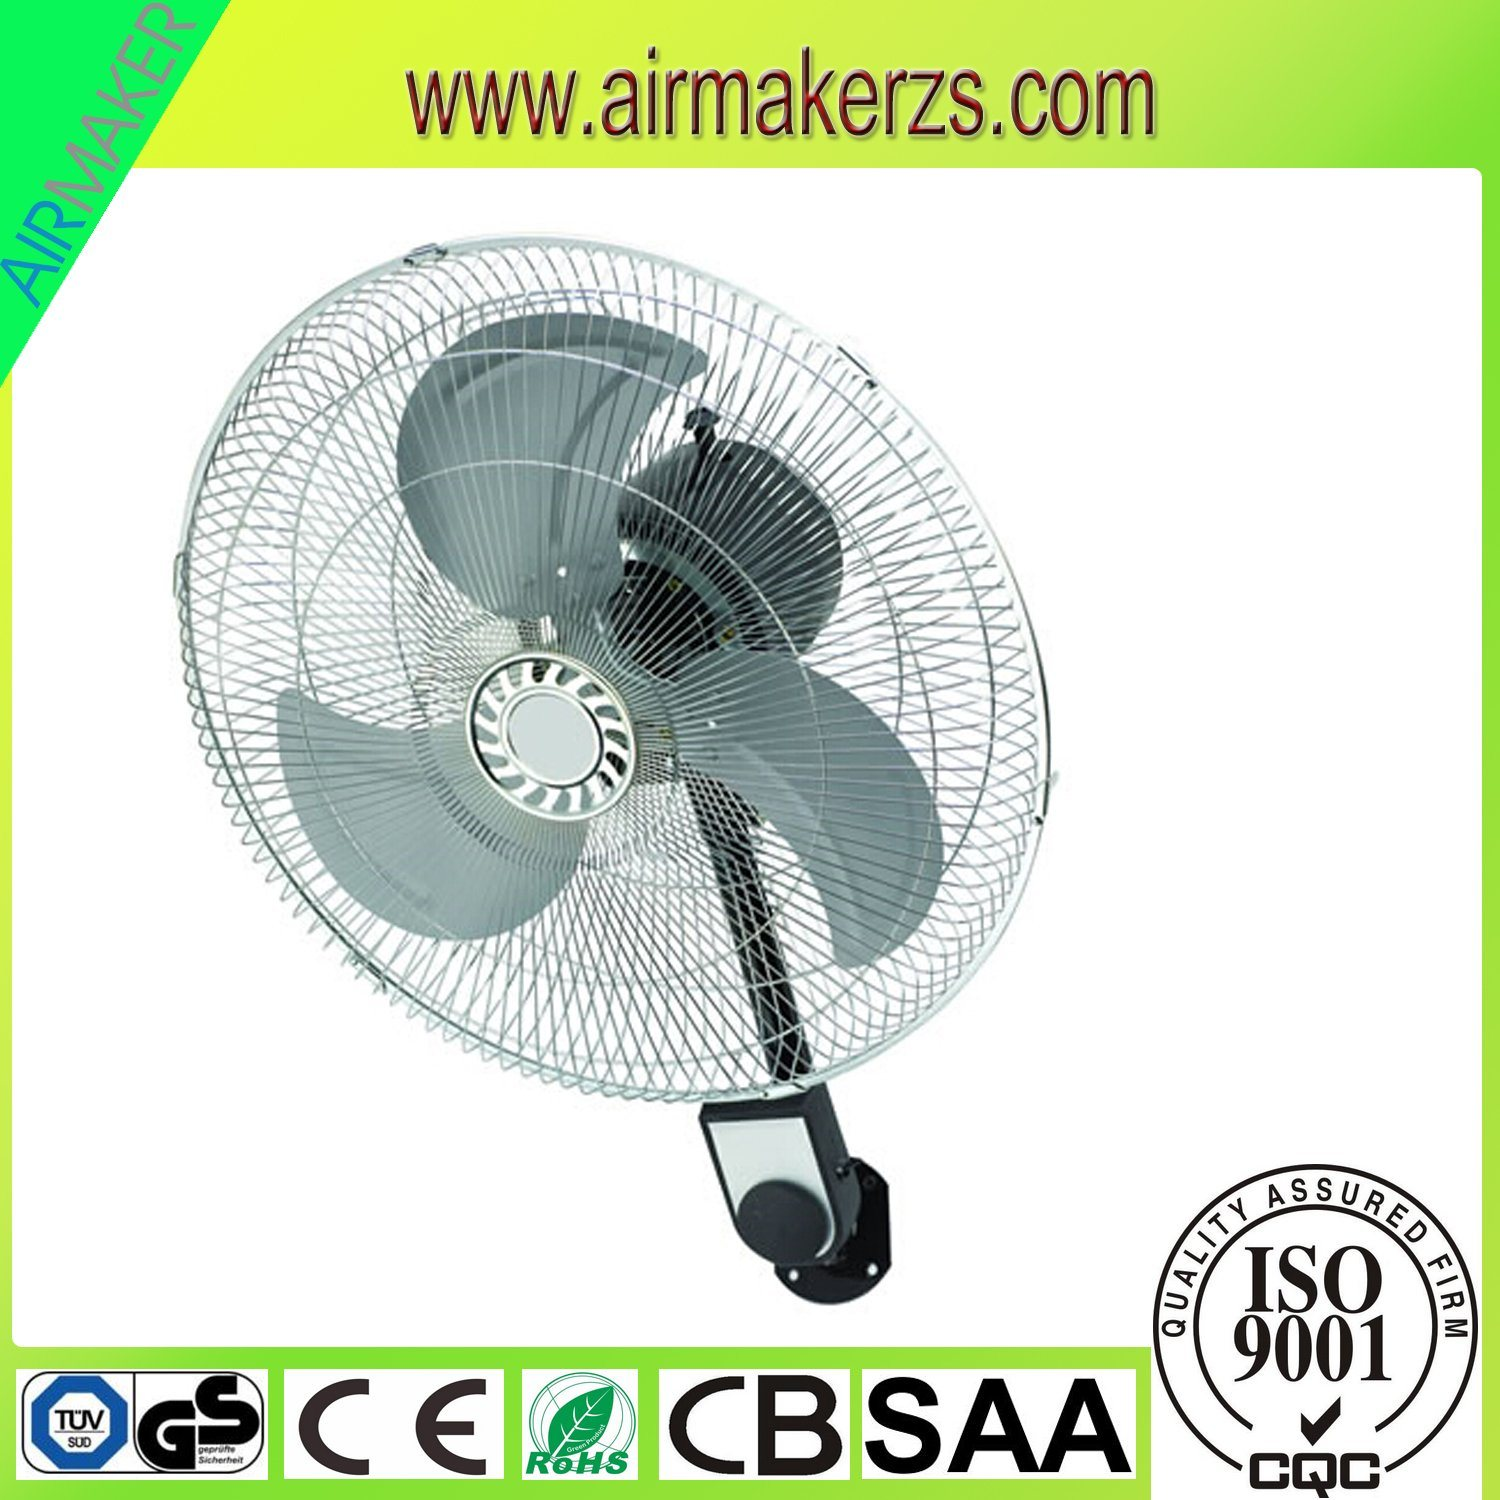 2017 News Plastic Body 16 Inch Wall Mount Oscillating Fan